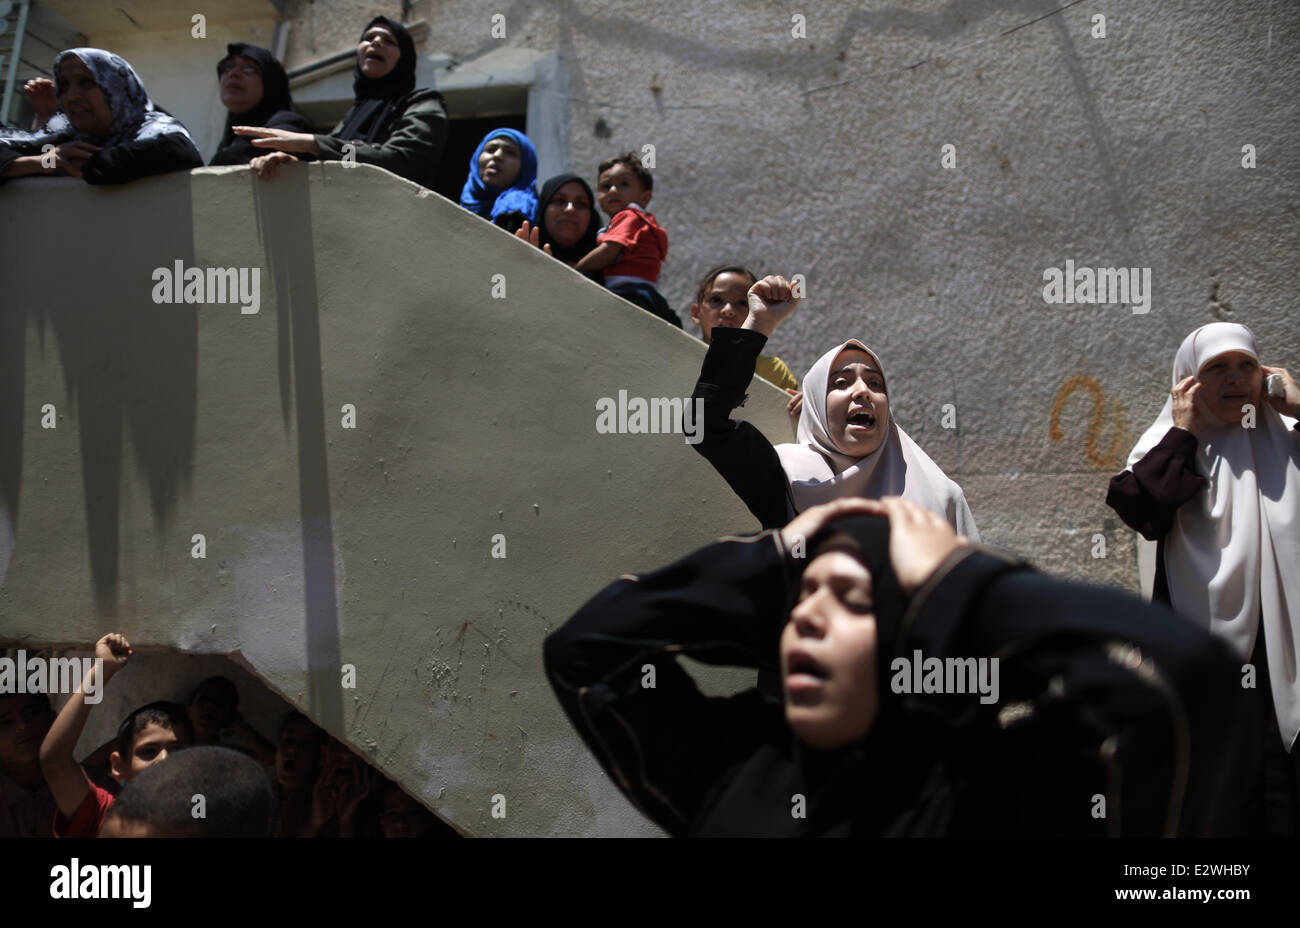 Gaza. 21st June, 2014. Relatives of a Palestinian member of Hamas' armed wing mourn during his funeral in Gaza - Stock Image